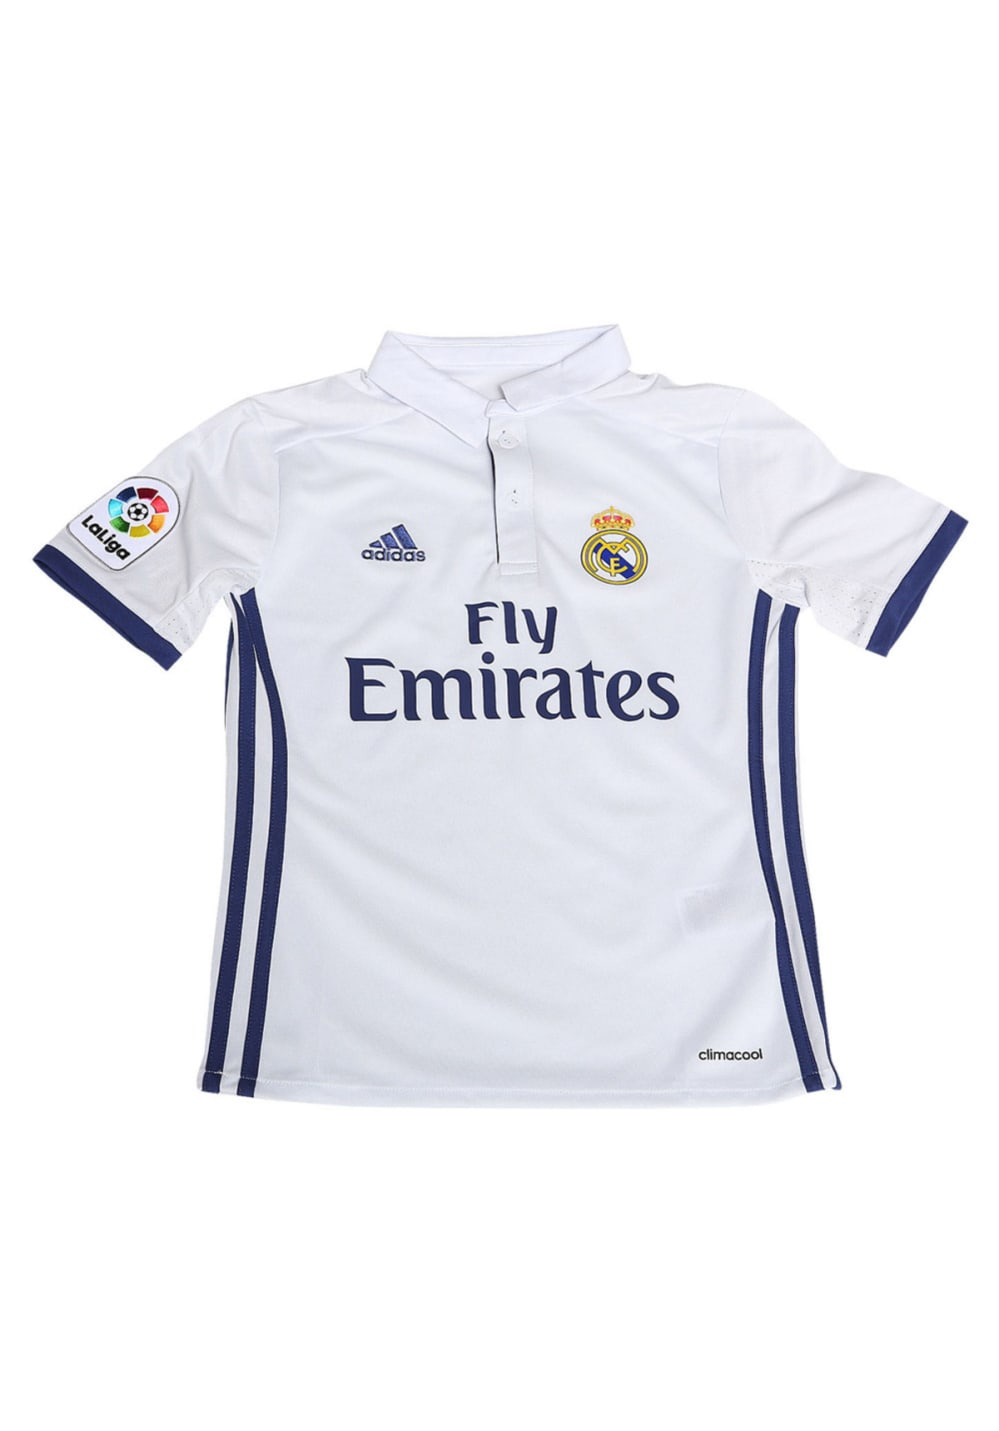 reputable site 708a2 e73ef adidas Real Madrid Home Jersey Youth - T-Shirts - Grey